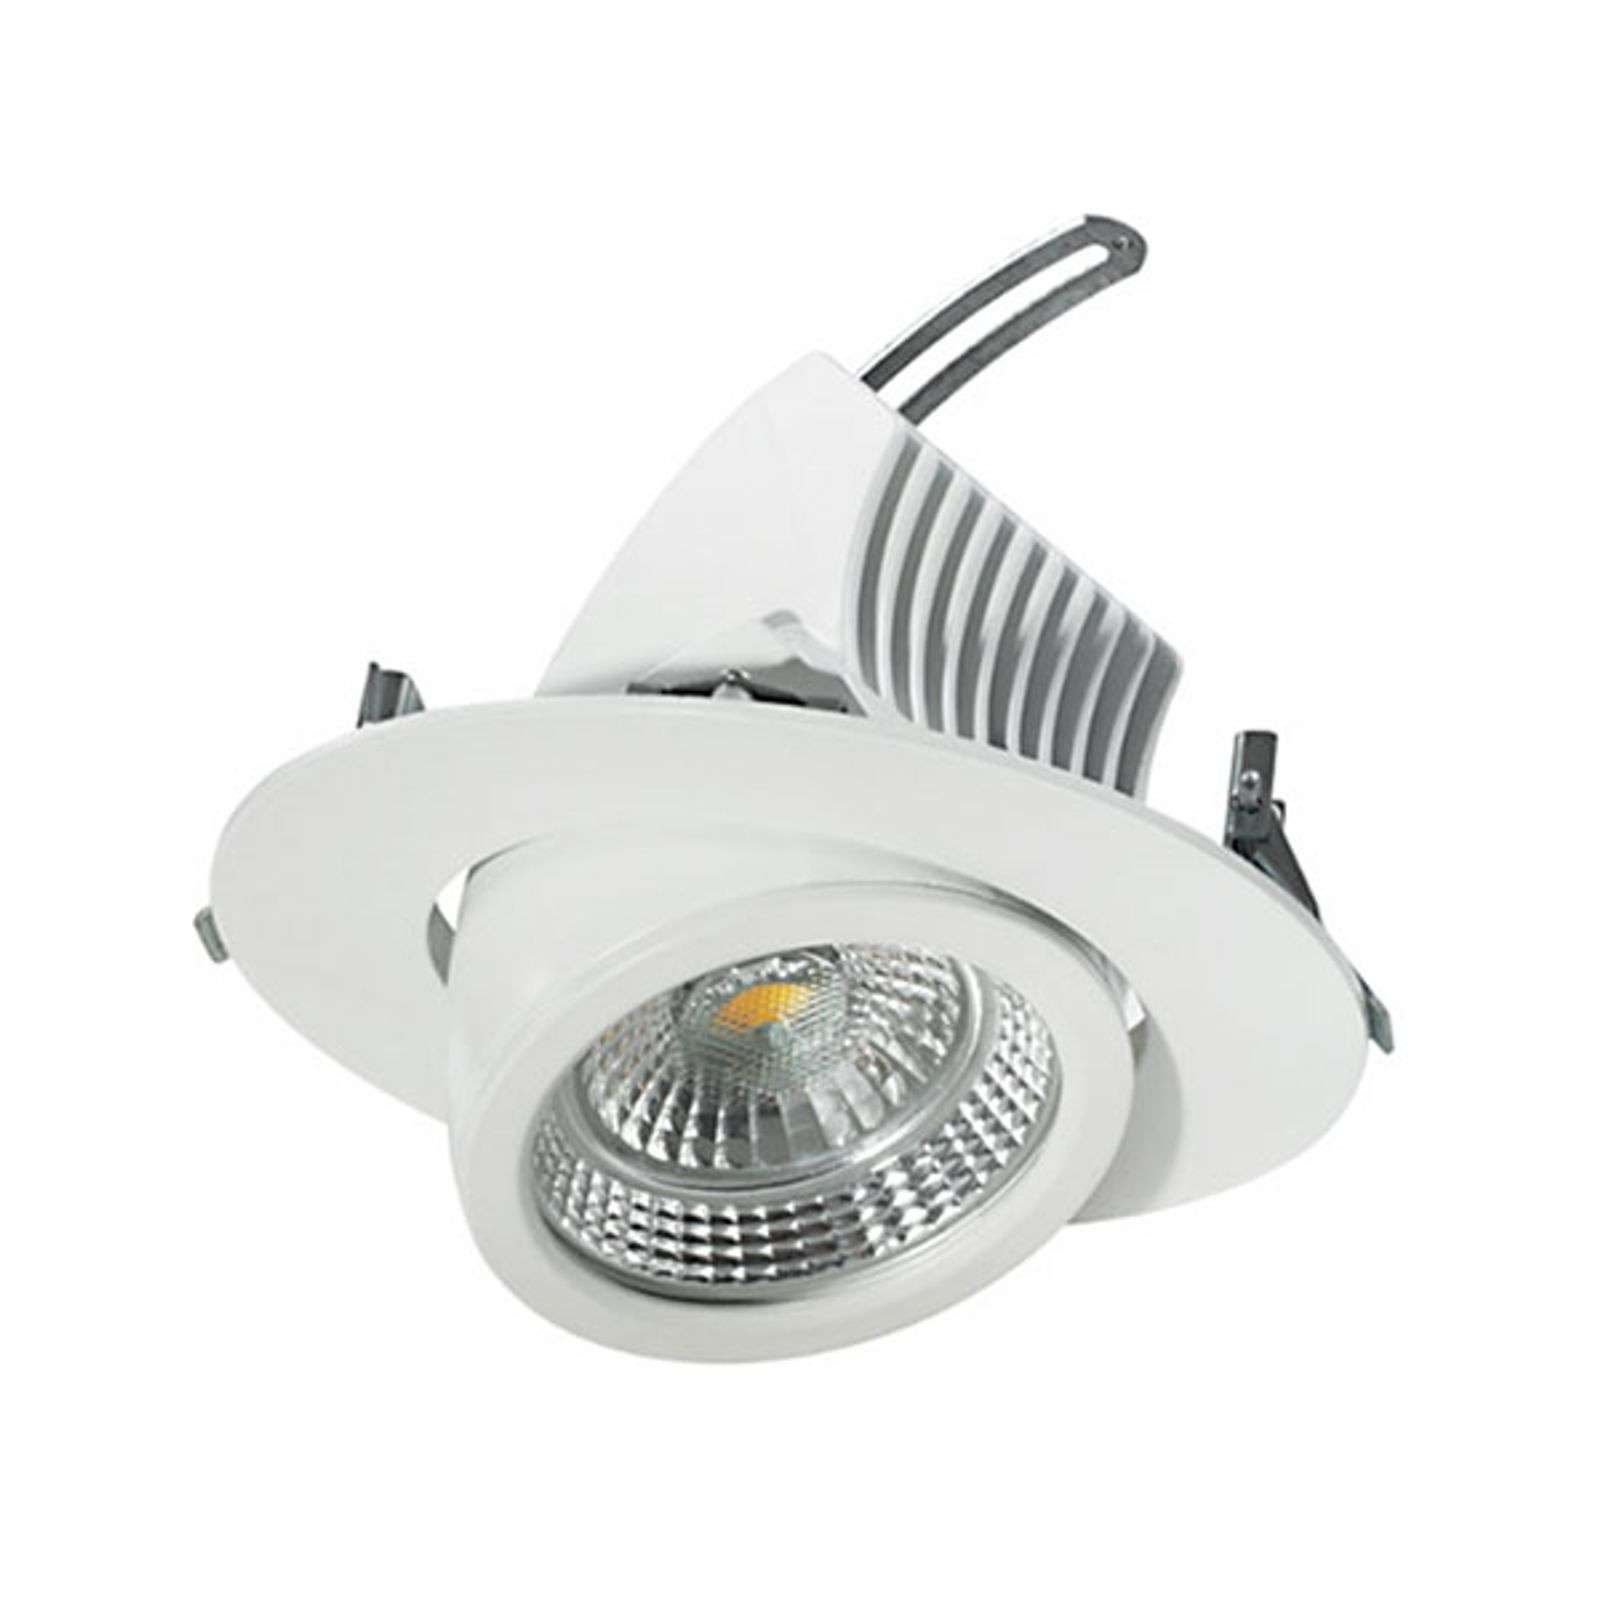 Spot encastrable LED pivotant 15 cm, 18 W